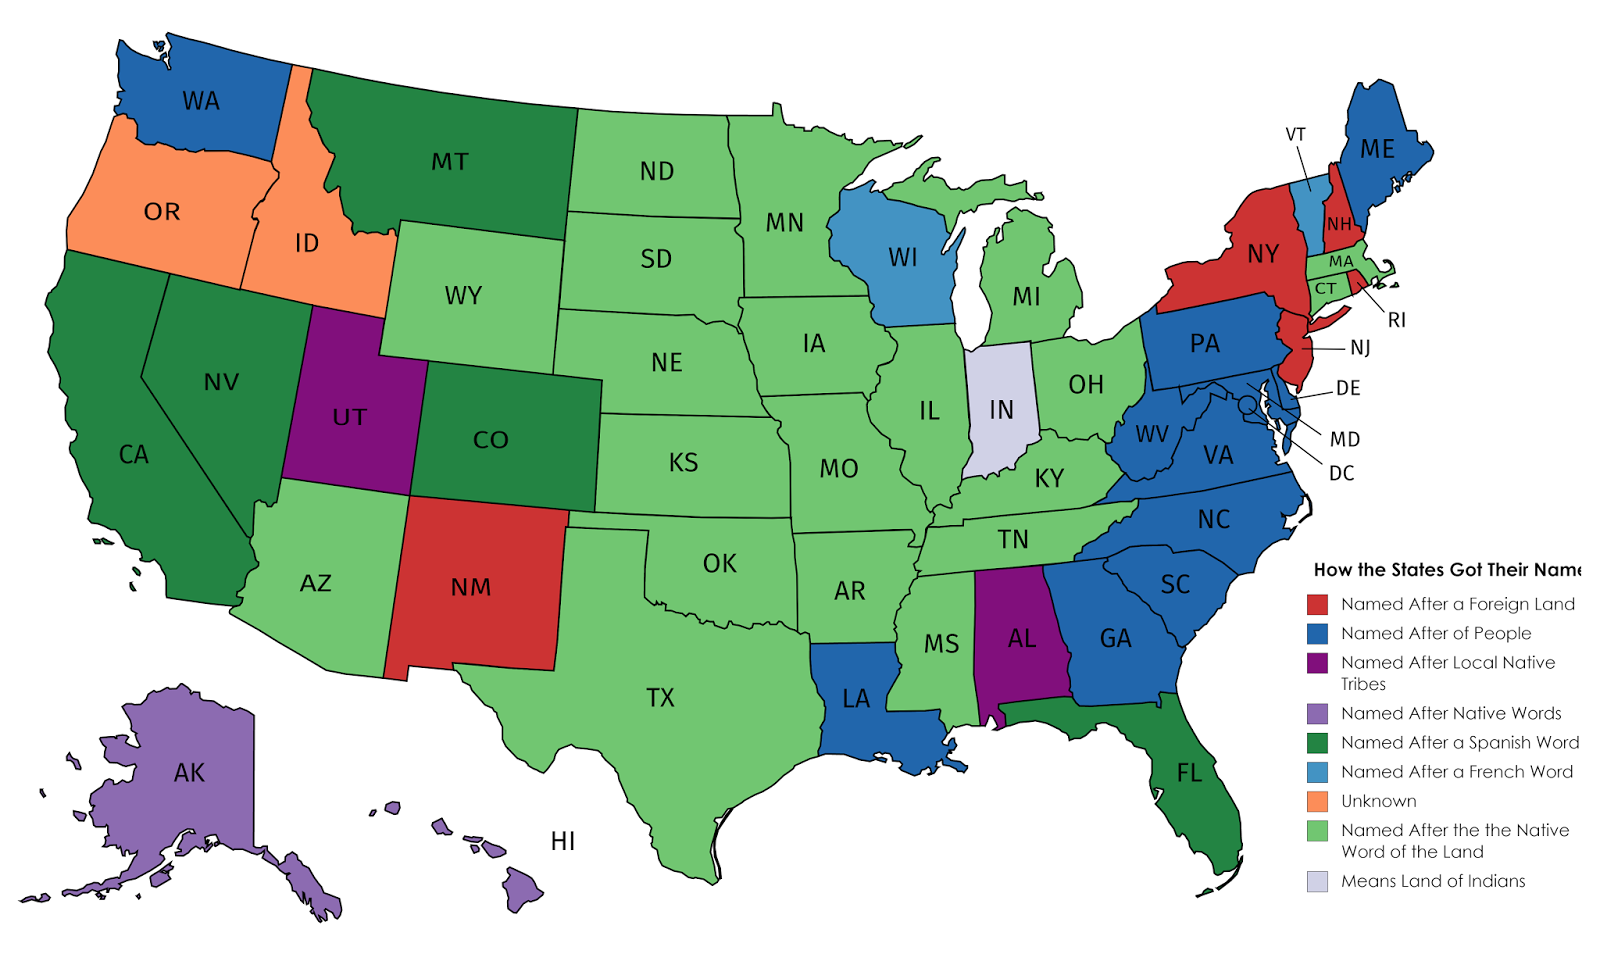 states named after people